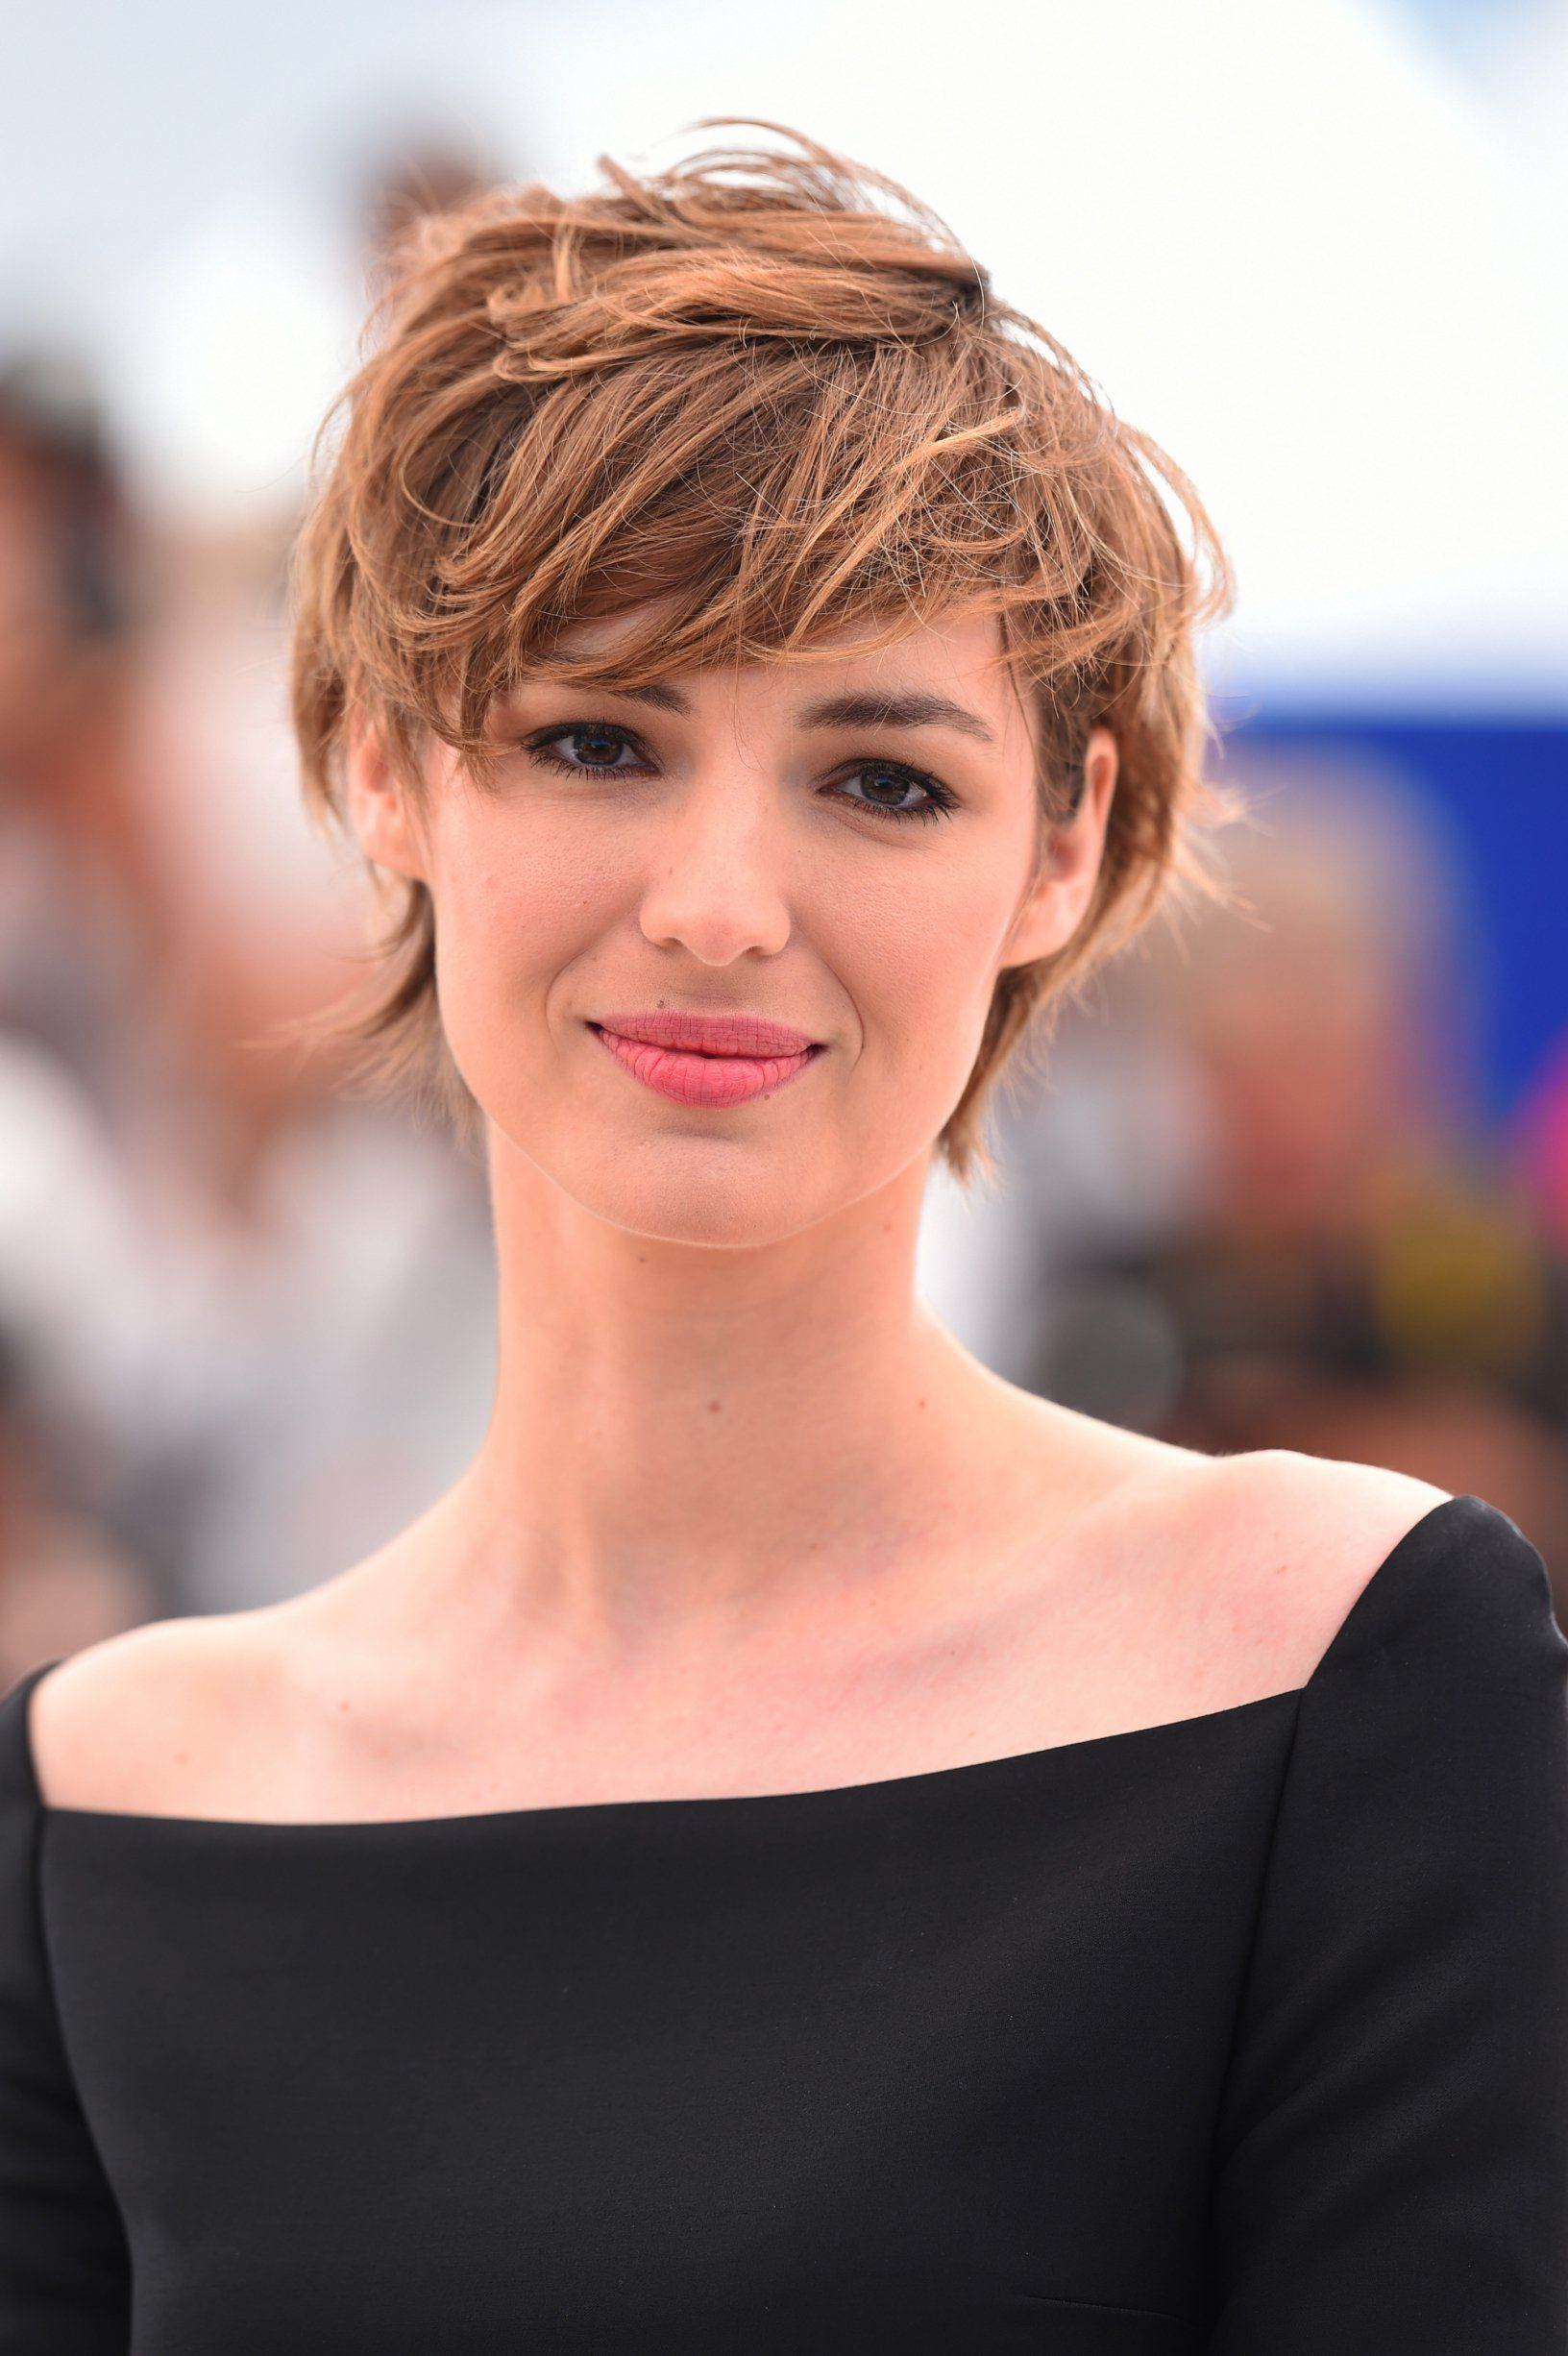 la coupe pixie de louise bourgoin beautiful sexy and fabulous after 40 pinterest coupes. Black Bedroom Furniture Sets. Home Design Ideas